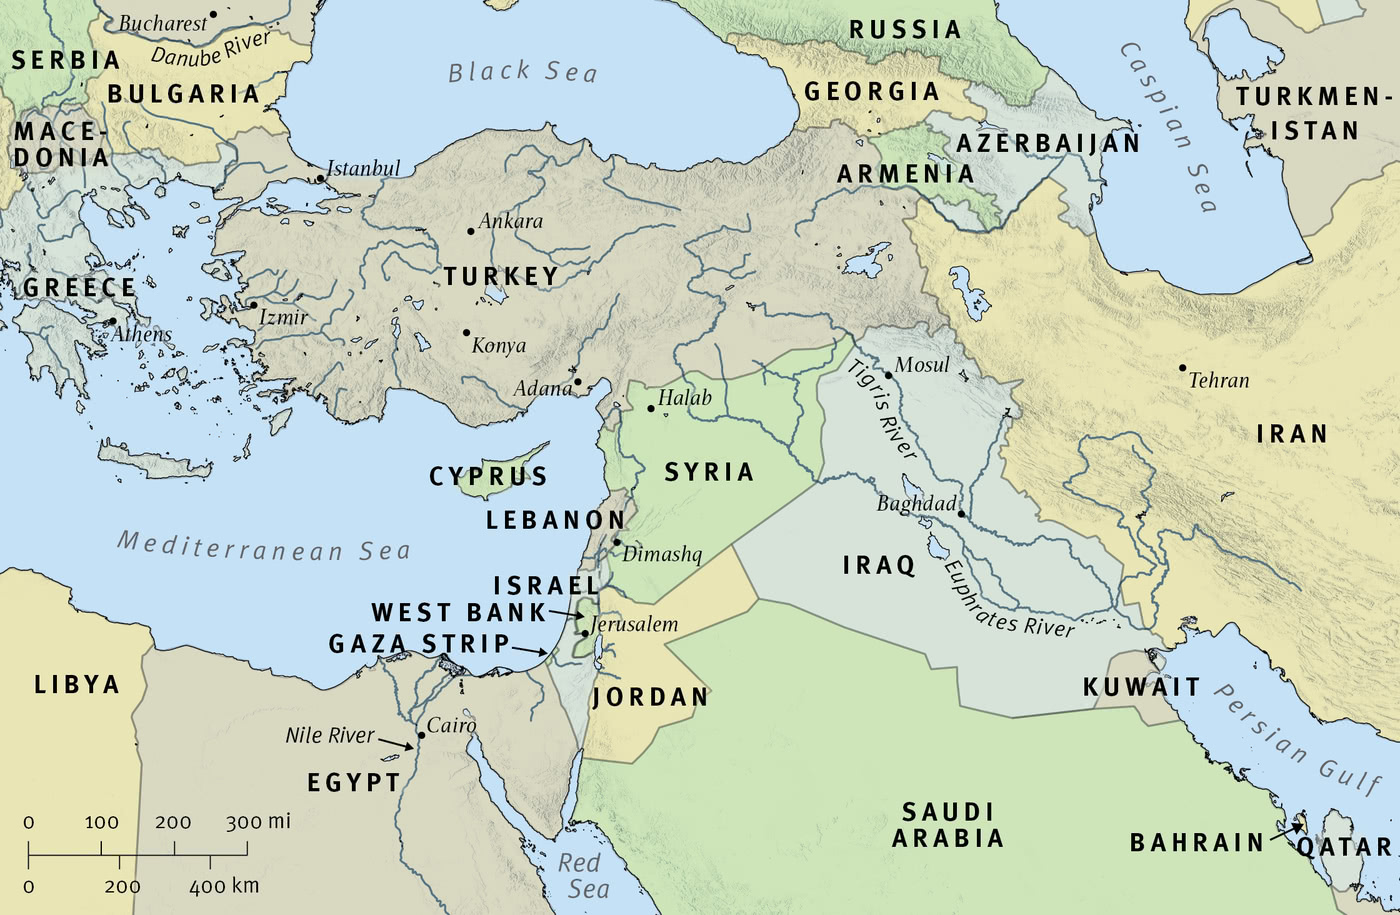 Map 1: The Middle East Today